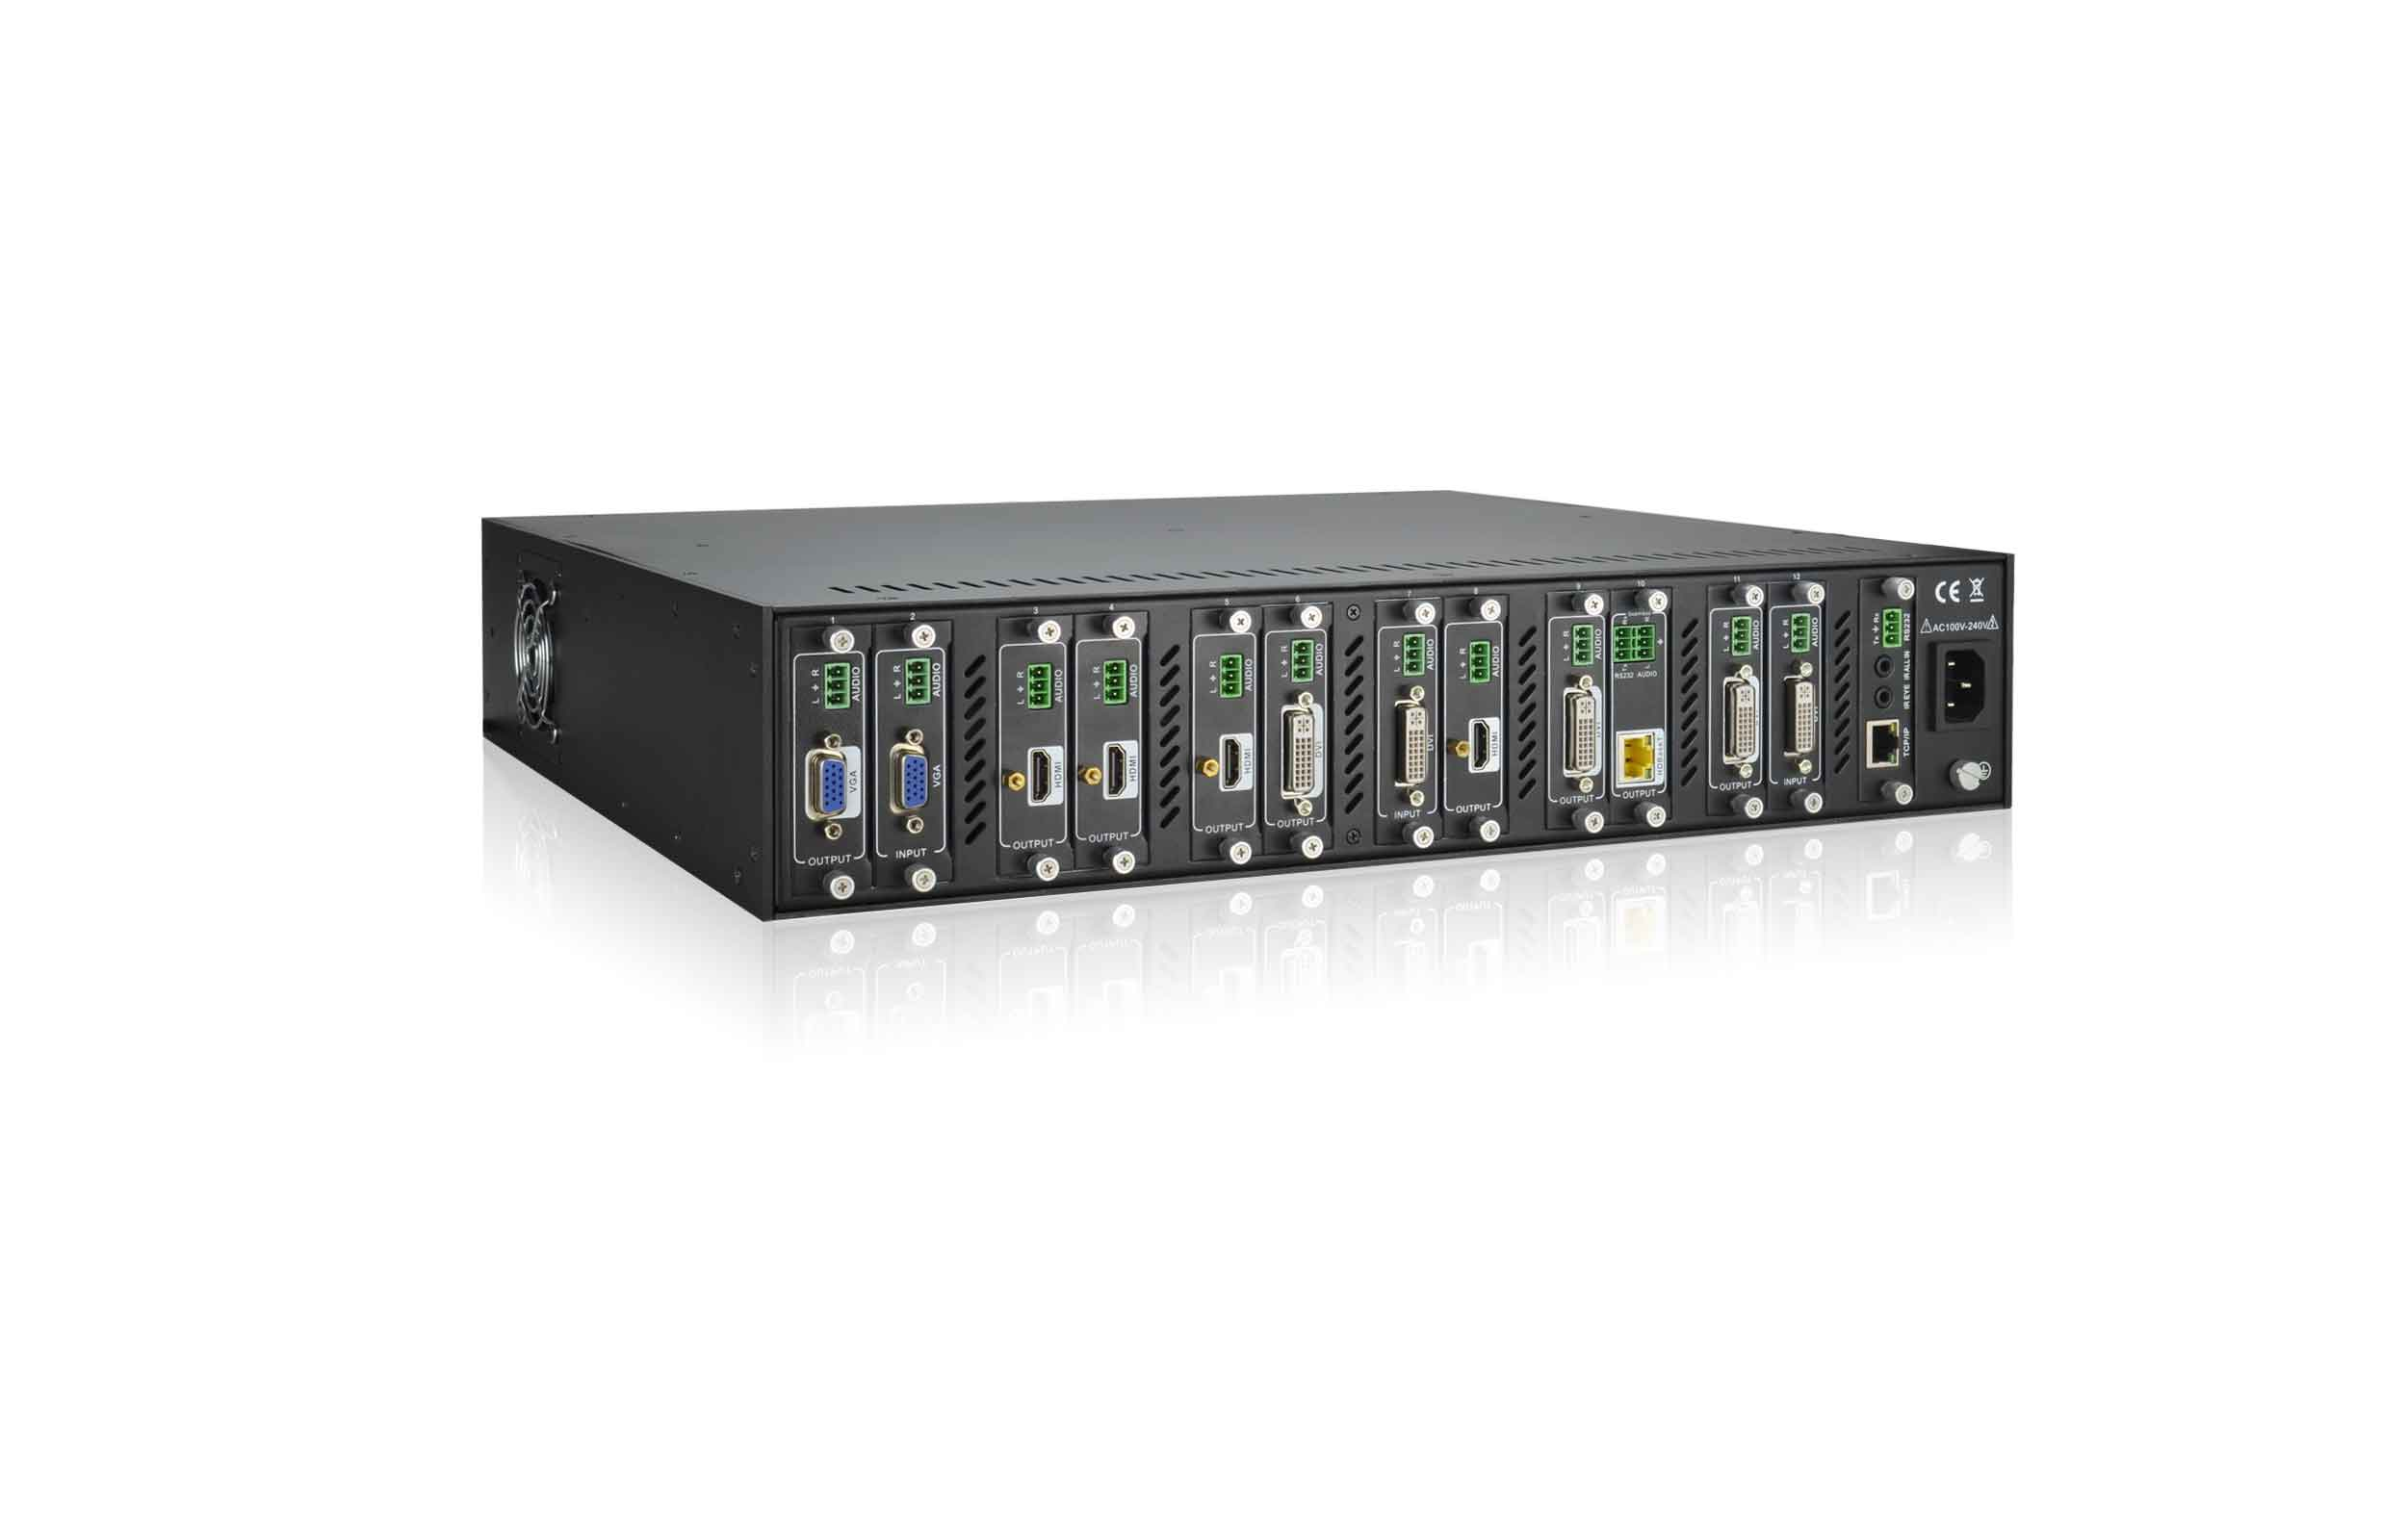 MATF12 - Chassis Matrice Flexible 12 ports Entrées/Sorties